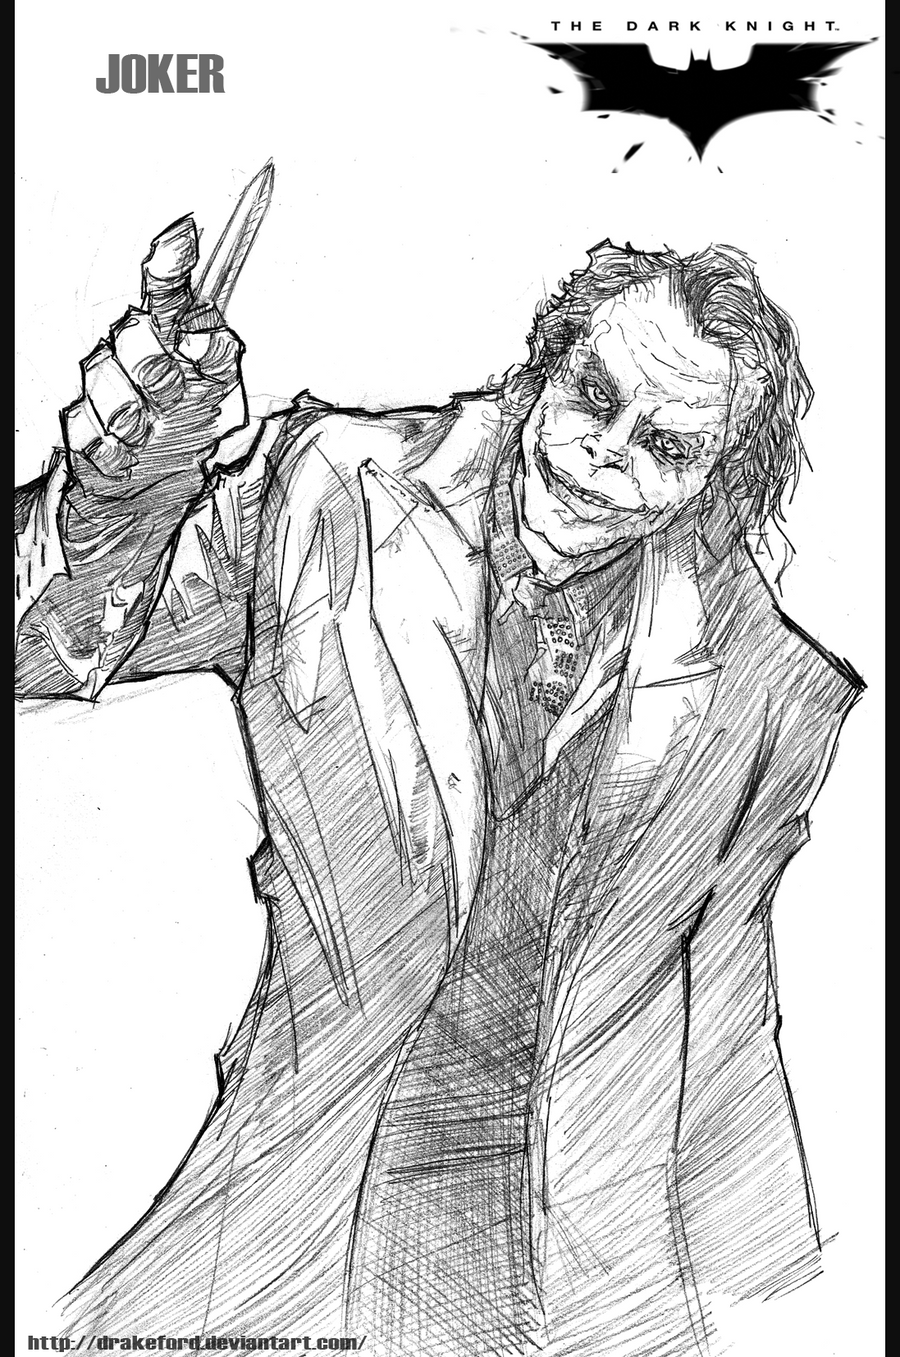 Joker the dark knight by drakeford on deviantart for The dark knight coloring pages